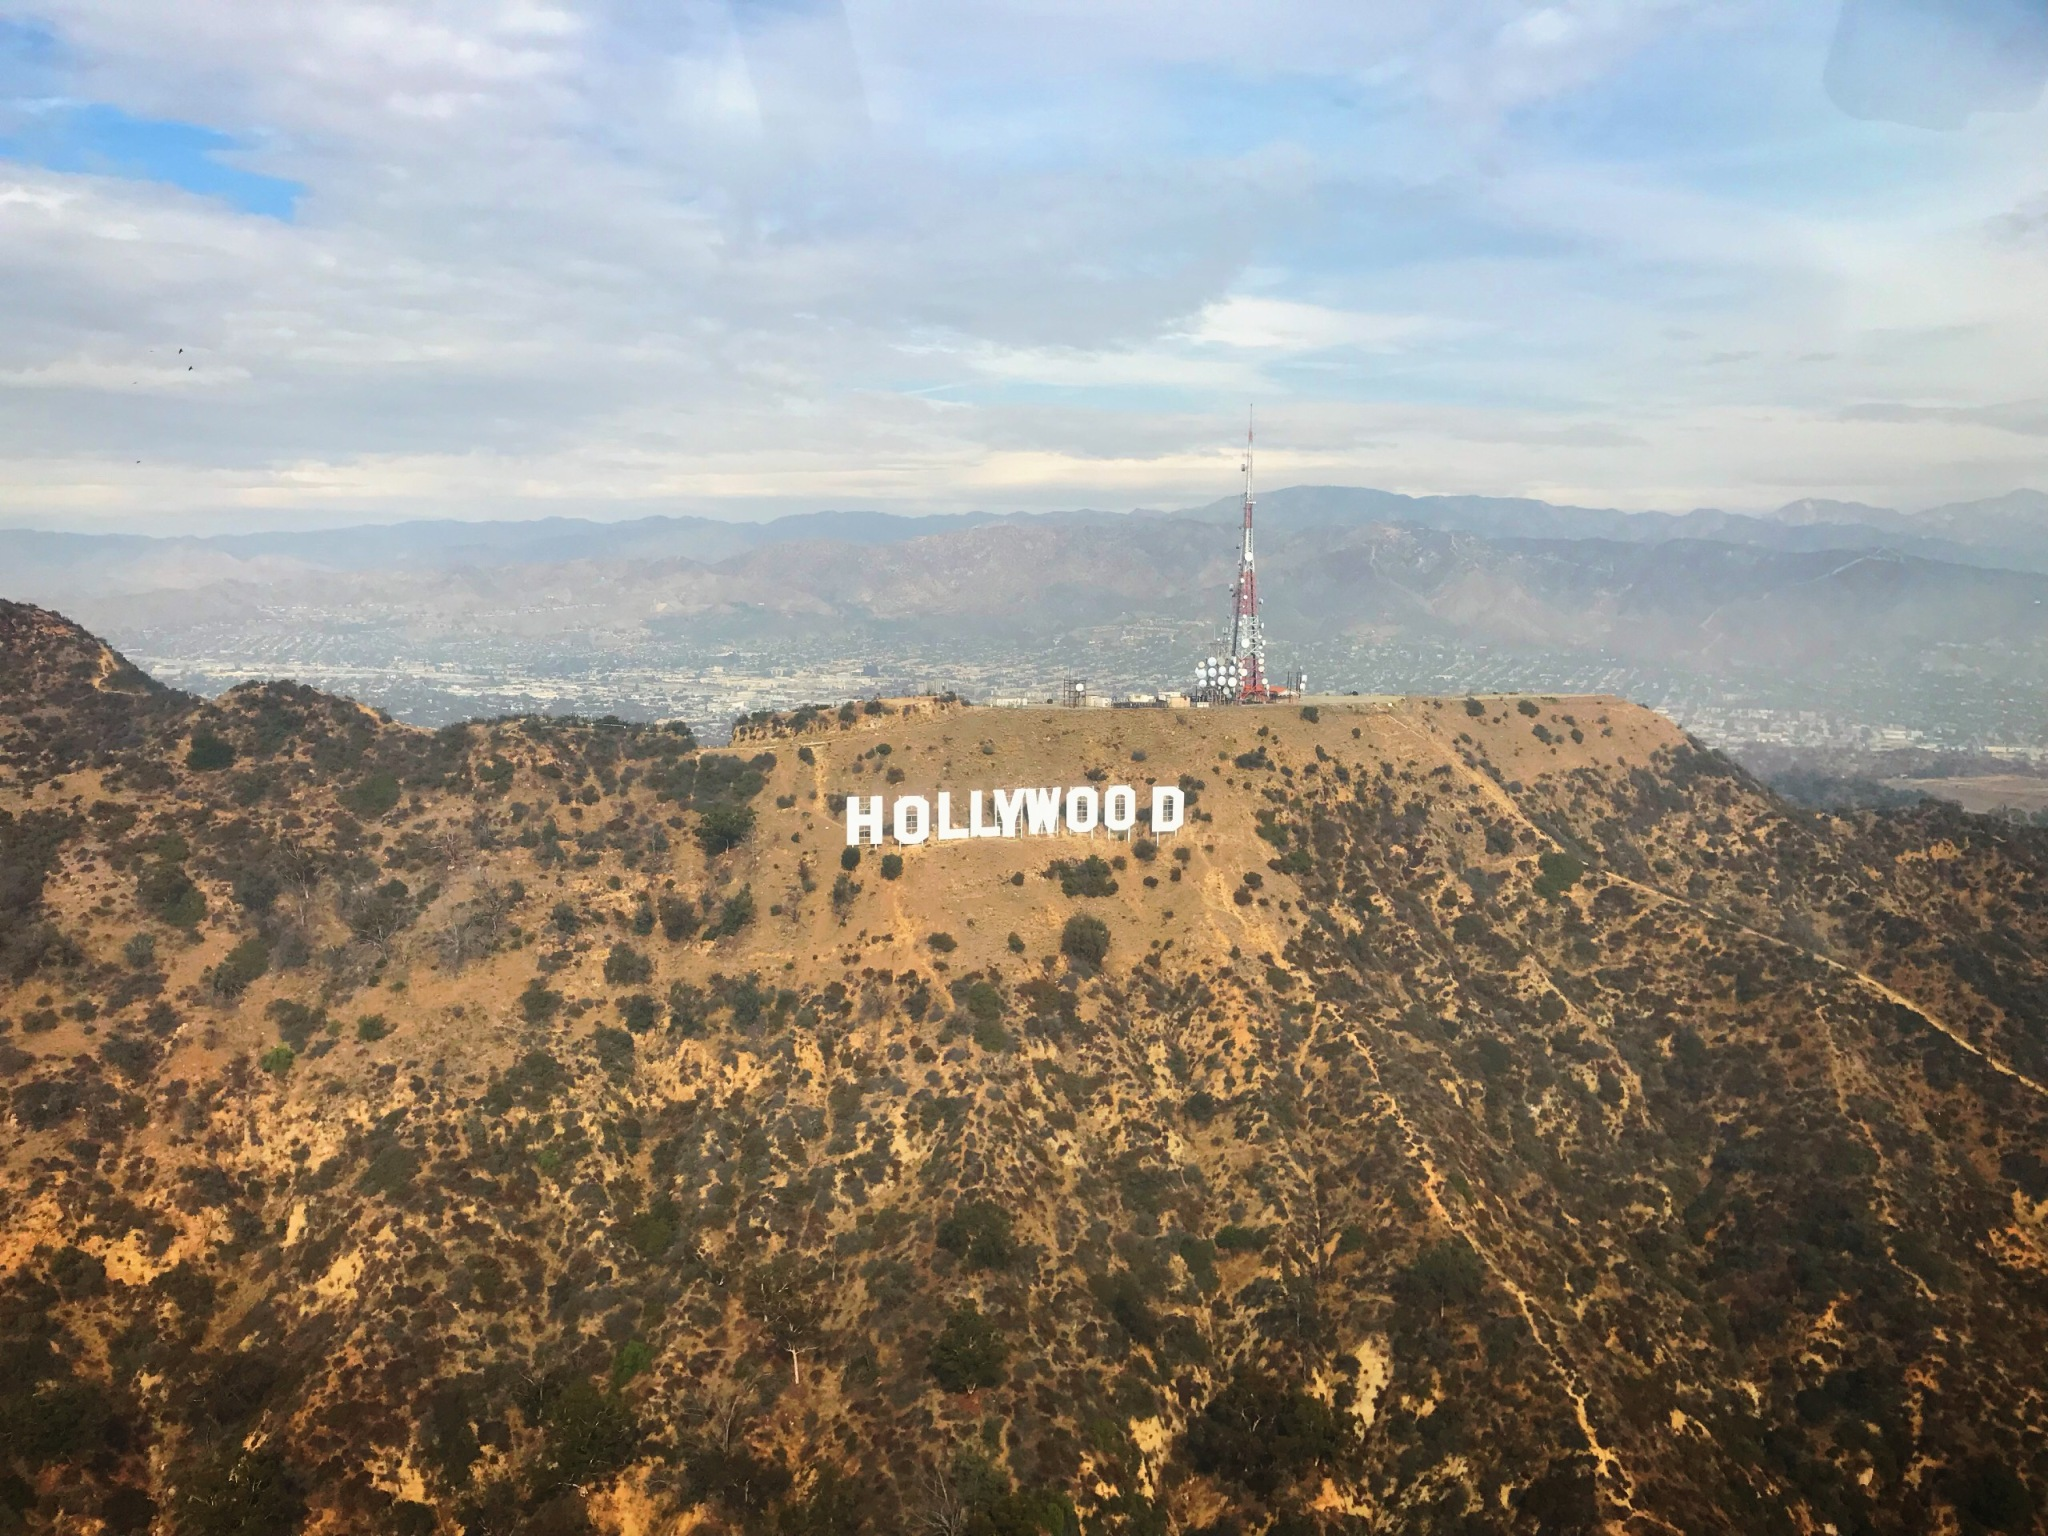 Hollywood Sign view from helicopter